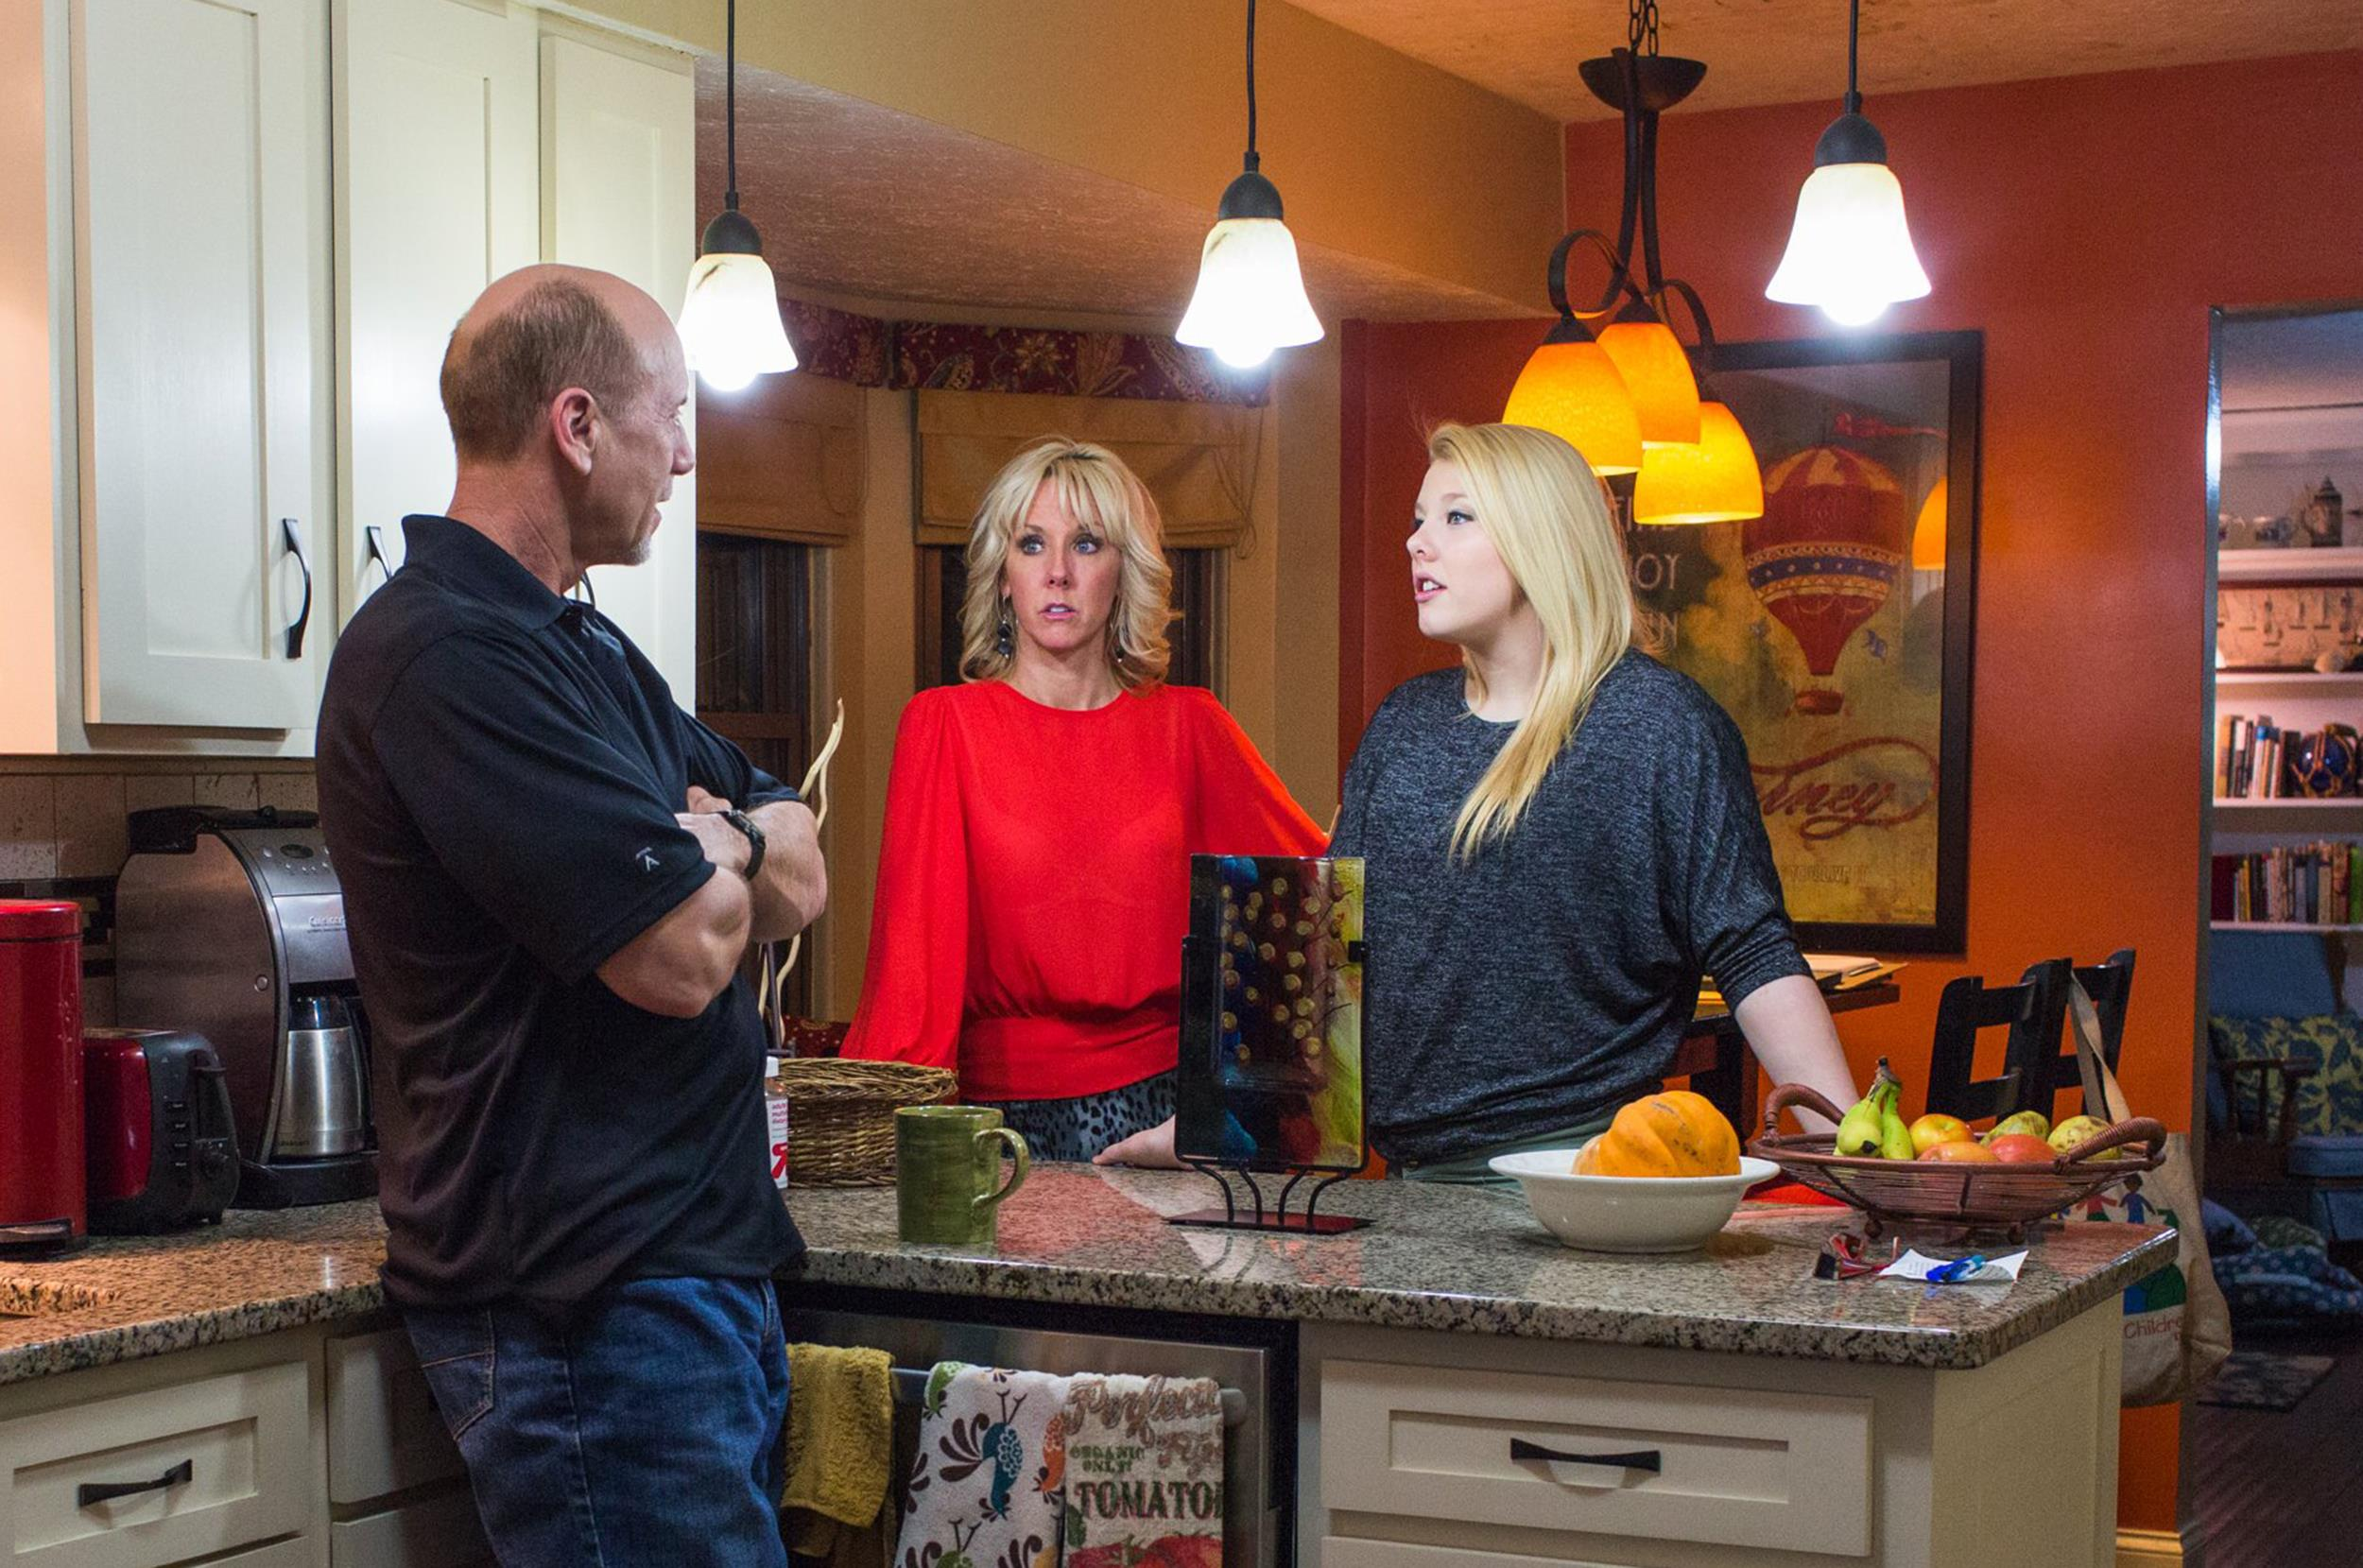 Image: Cathy Tiffany, 44, talks with daughter Autumn Selby, 16, and husband Gary Tiffany